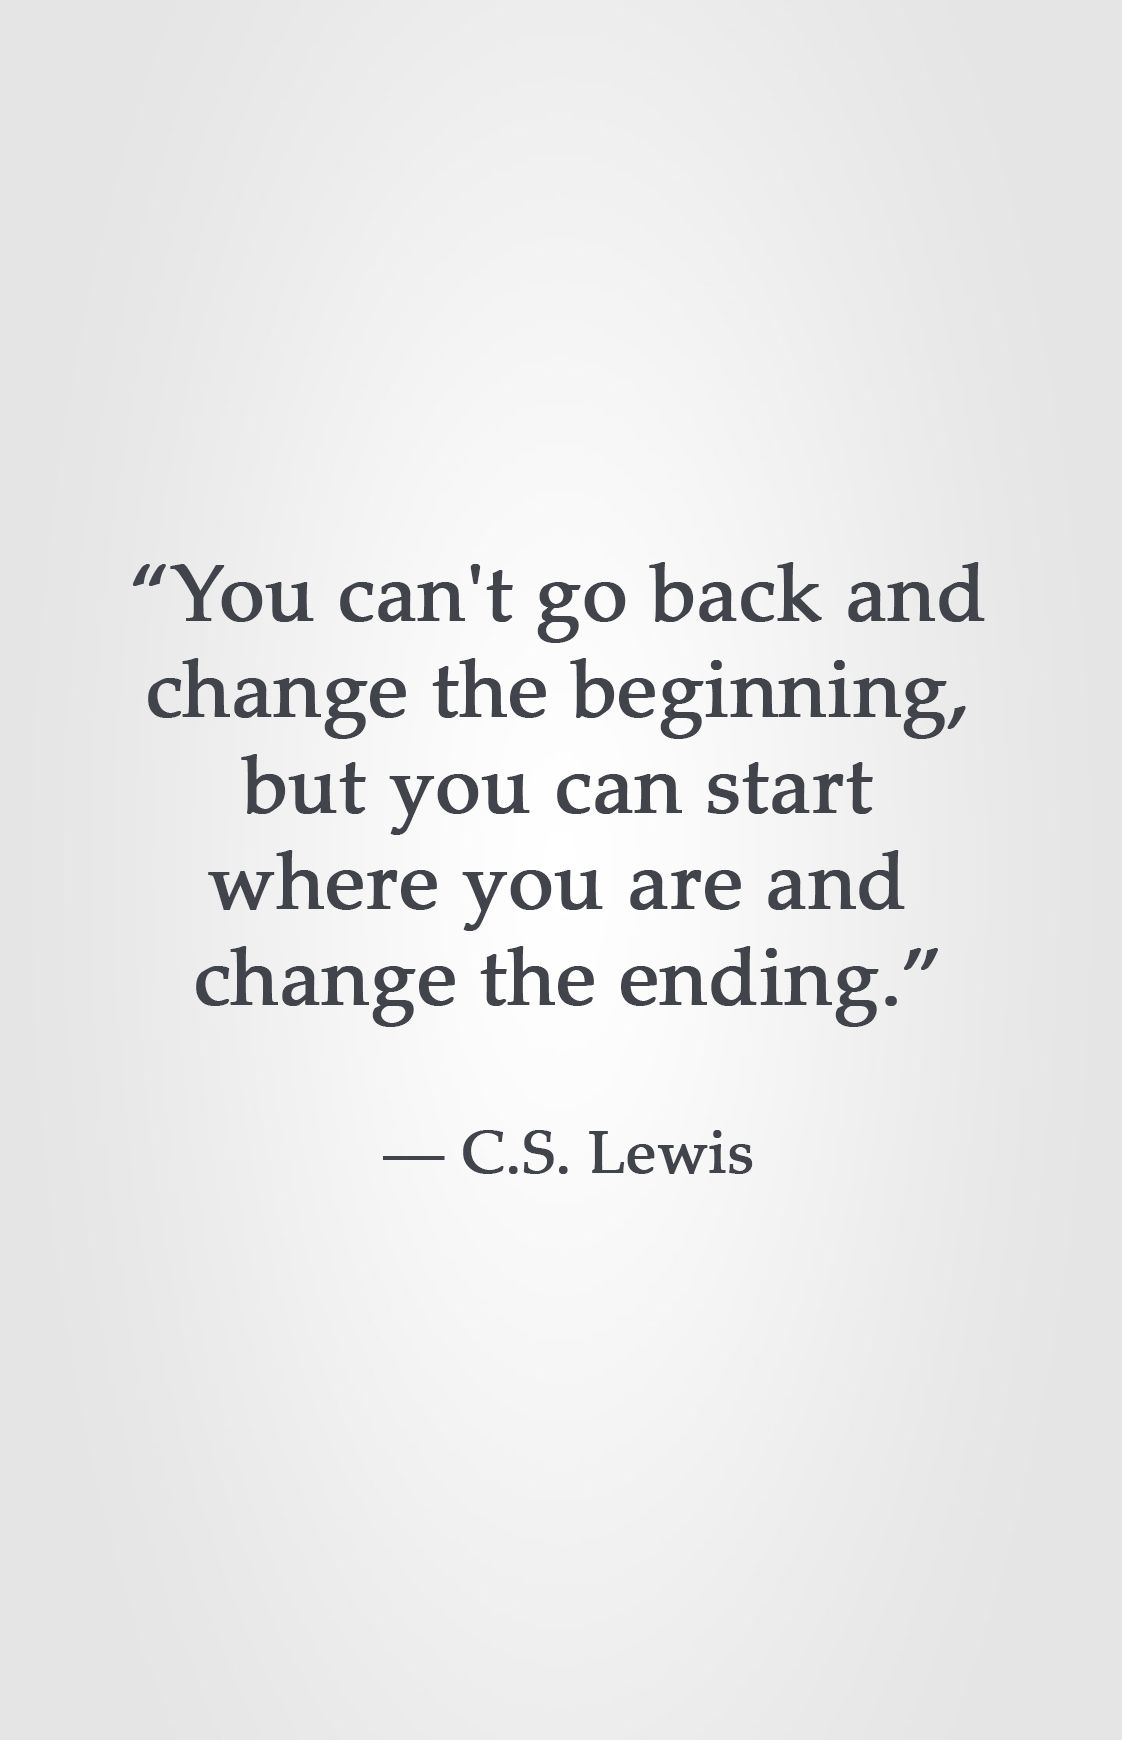 Quotes About Change Prepossessing You Can't Go Back And Change The Beginning But You Can Start Where . Inspiration Design